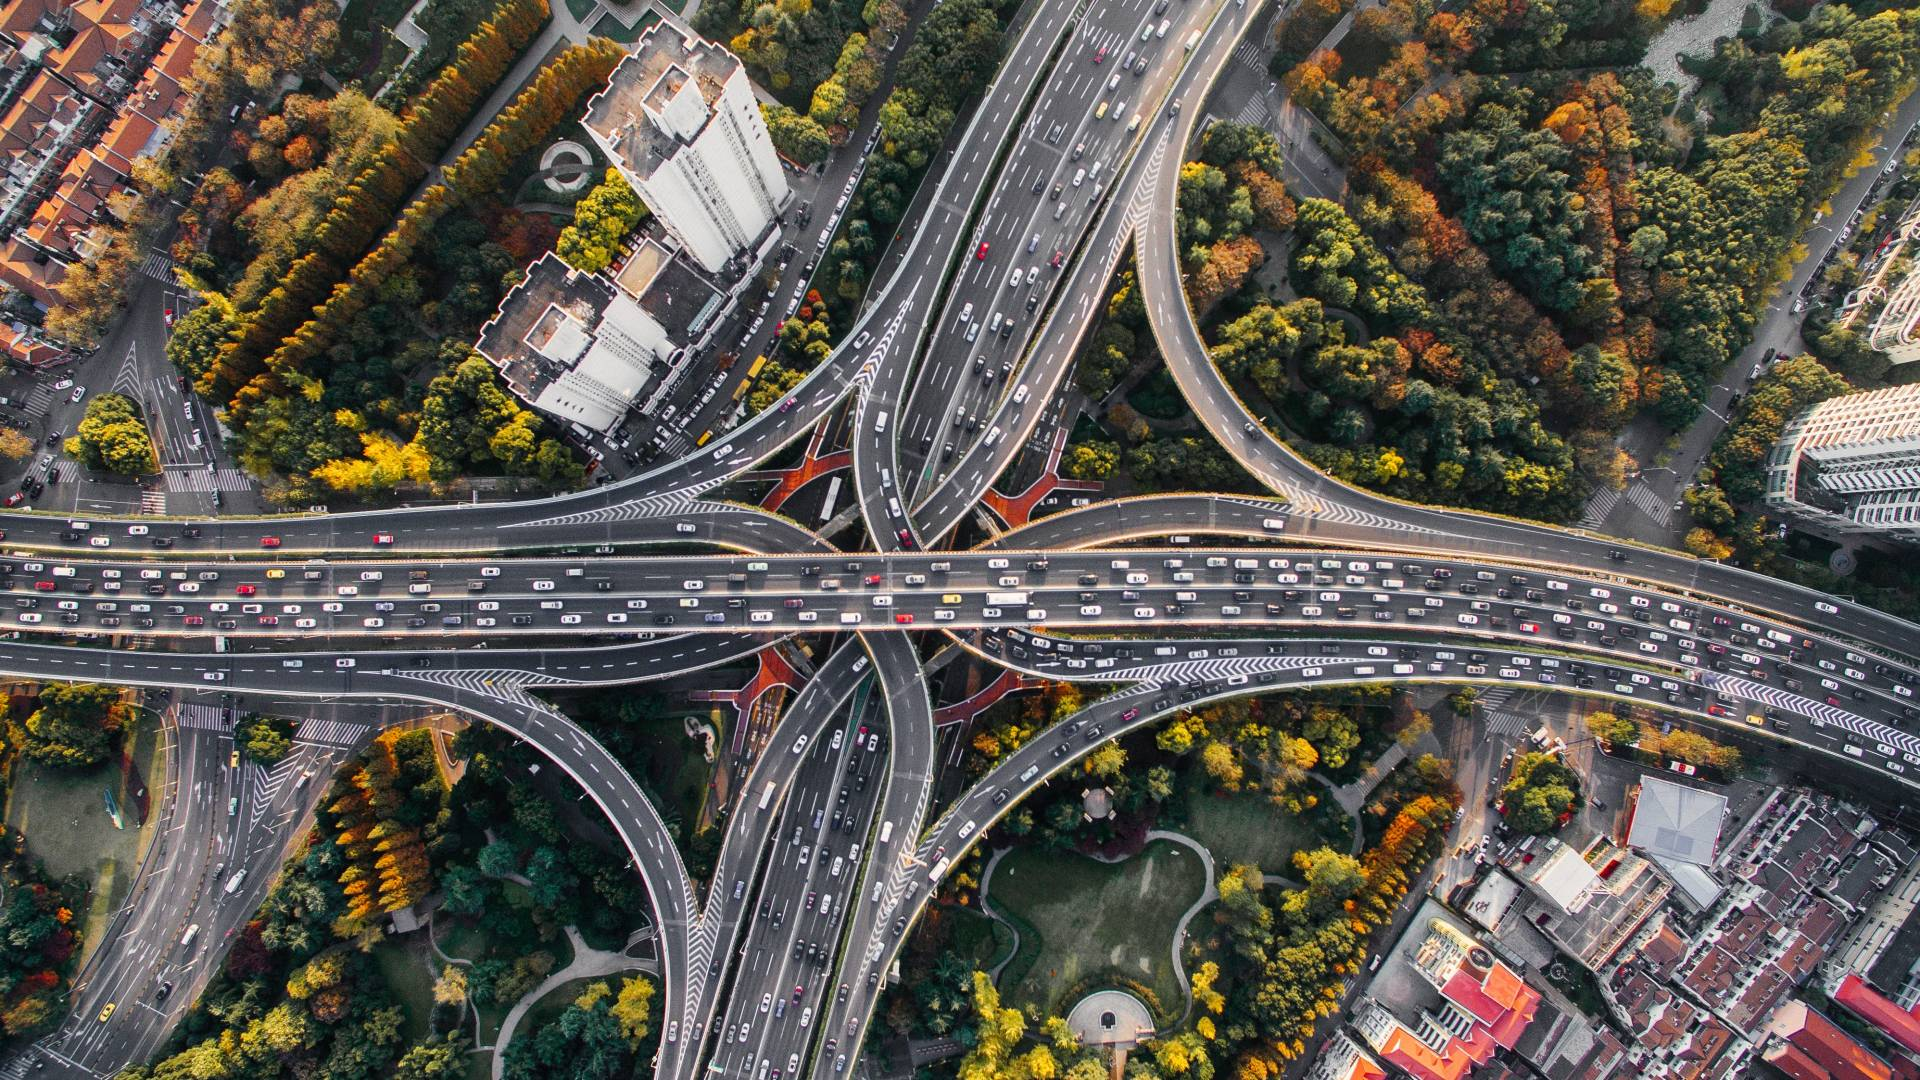 Birds-eye view of cars and roads